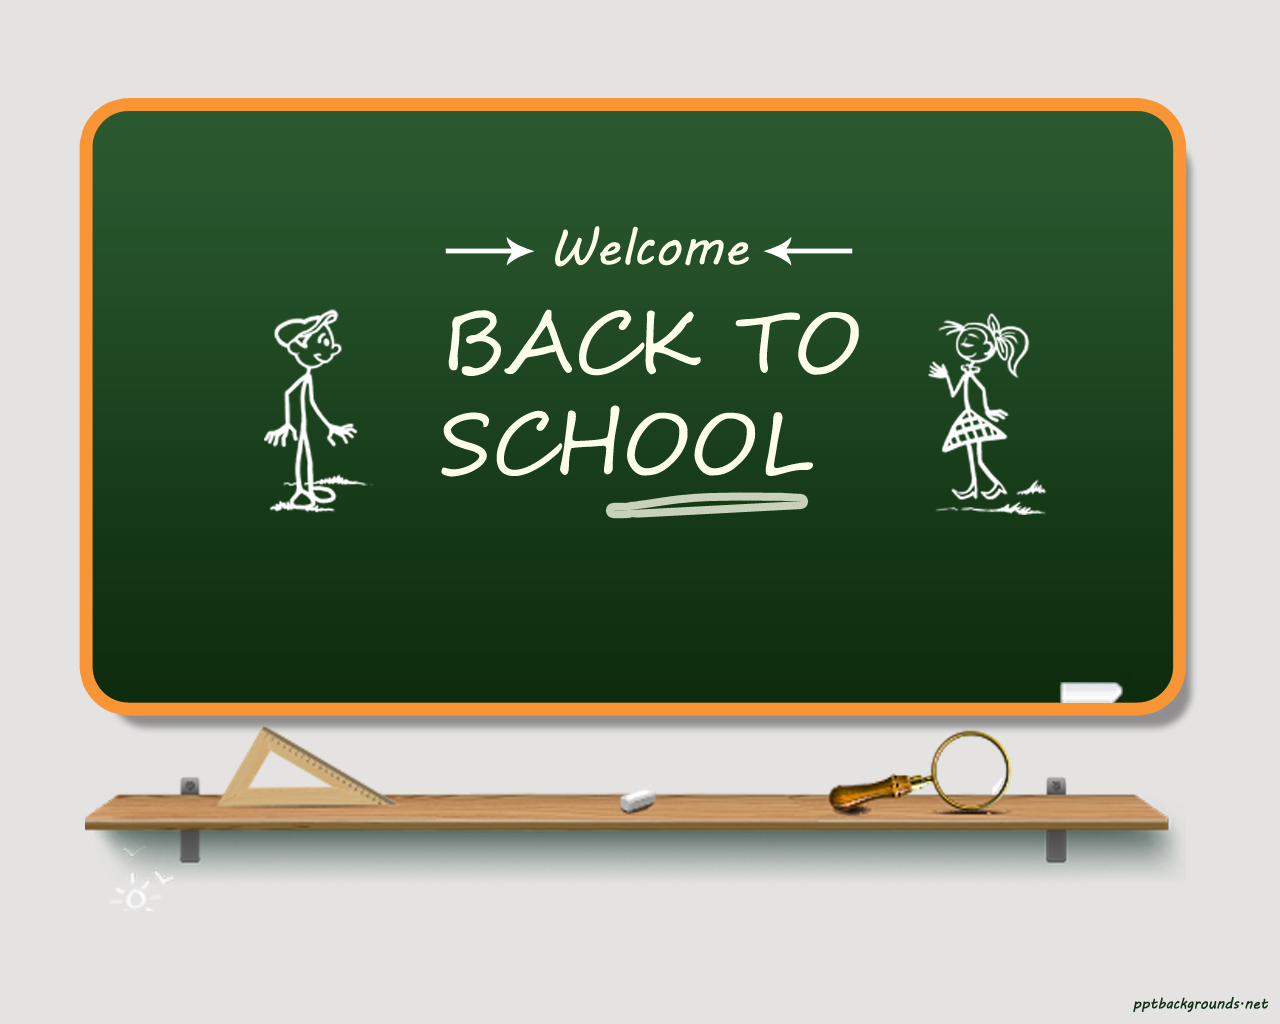 Back To School 2014   2015 Background For PowerPoint   Education 1280x1024